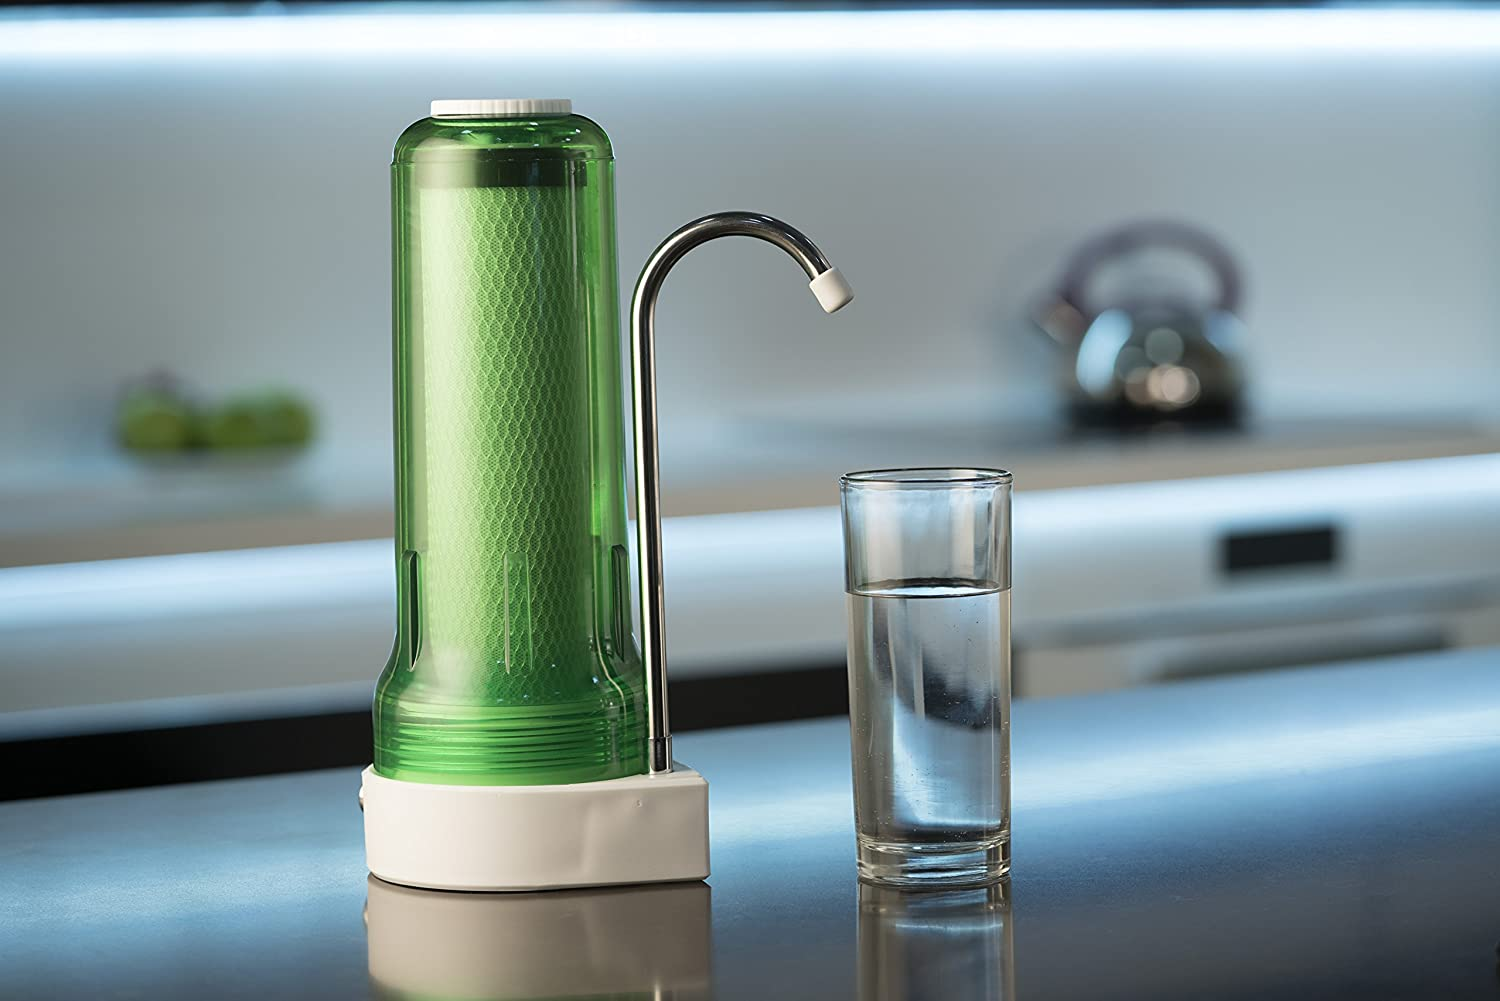 Amazon.com: Ecosoft Countertop Drinking Water Filter System w/ 1 ...